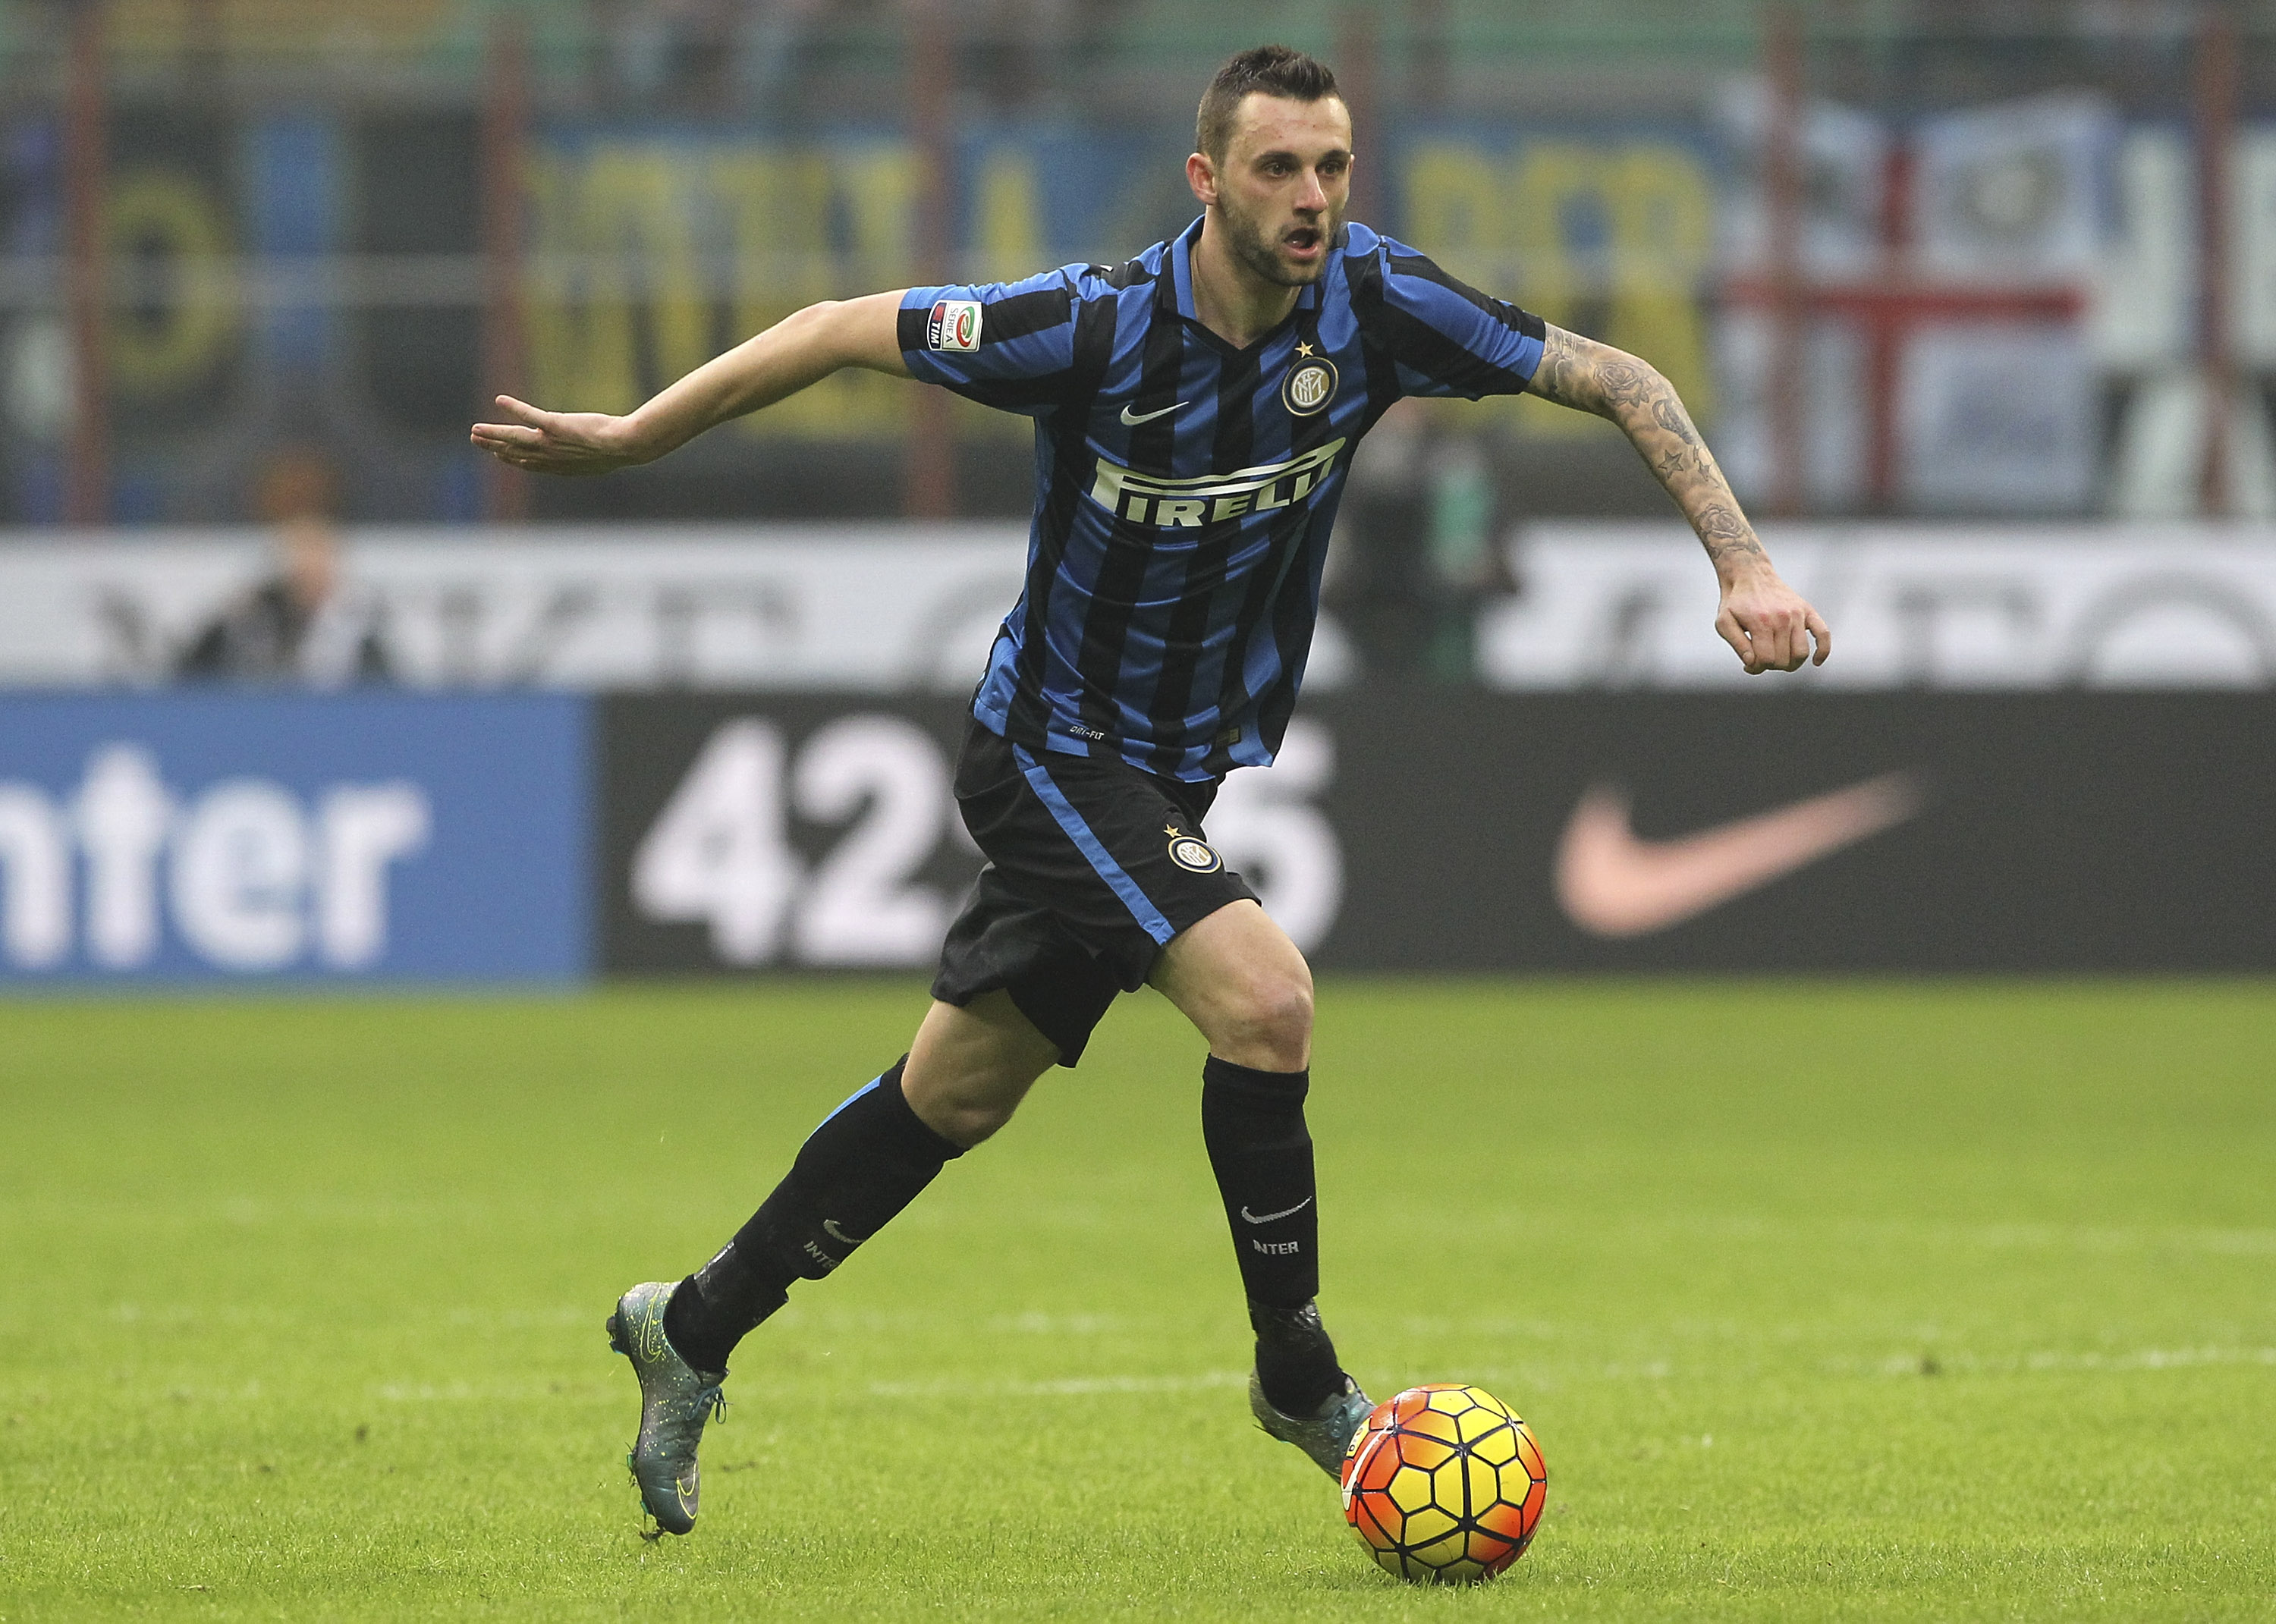 MILAN, ITALY - JANUARY 10: Marcelo Brozovic of FC Internazionale Milano in action during the Serie A match between FC Internazionale Milano and US Sassuolo Calcio at Stadio Giuseppe Meazza on January 10, 2016 in Milan, Italy. (Photo by Marco Luzzani/Getty Images)